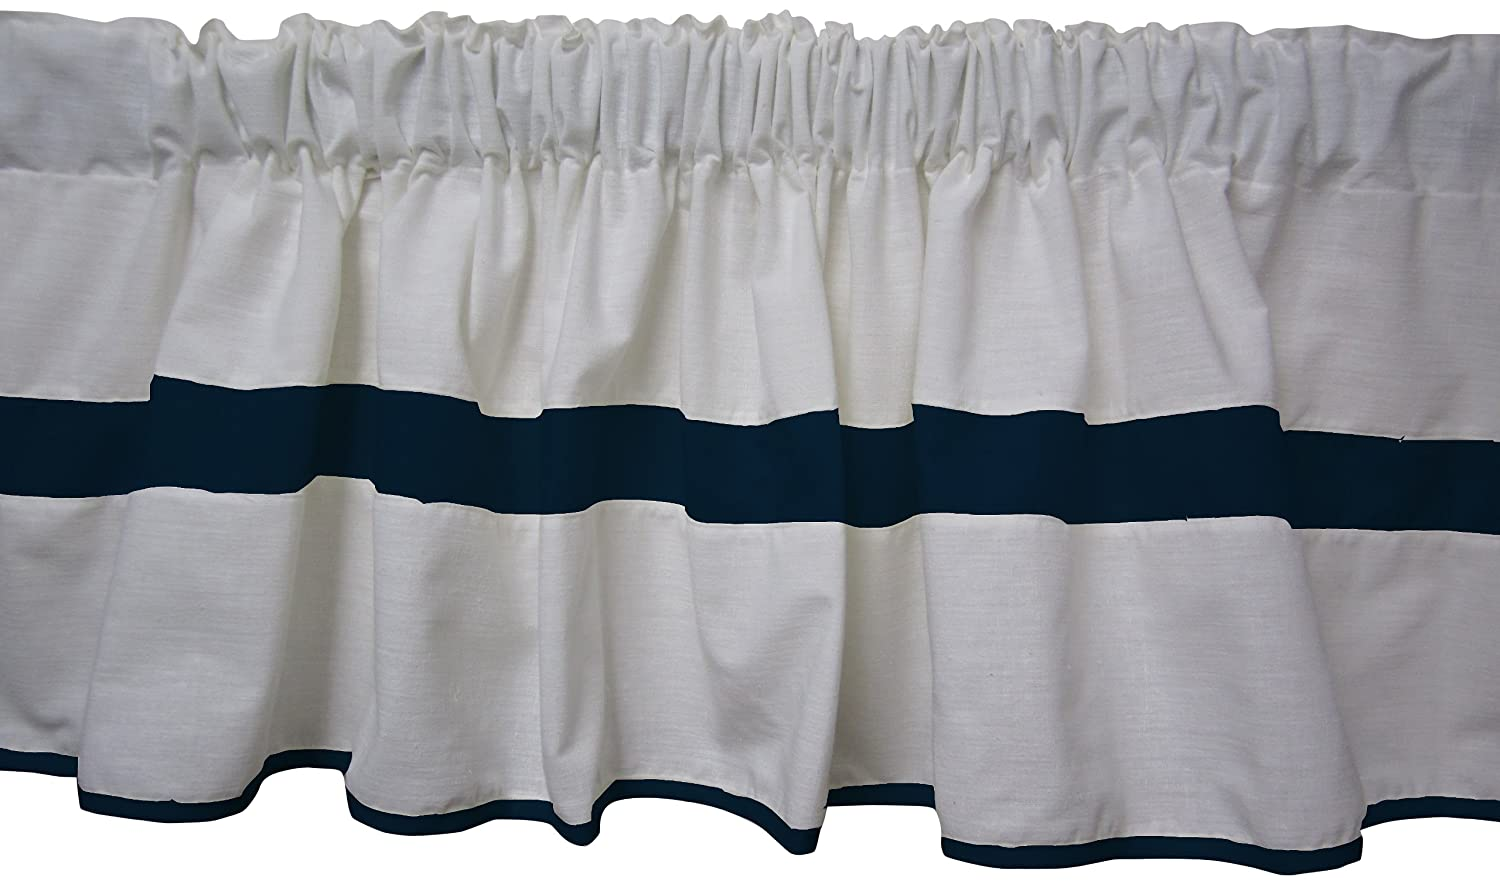 Baby Doll Bedding Modern Hotel Style Window Valance, Navy 1250val